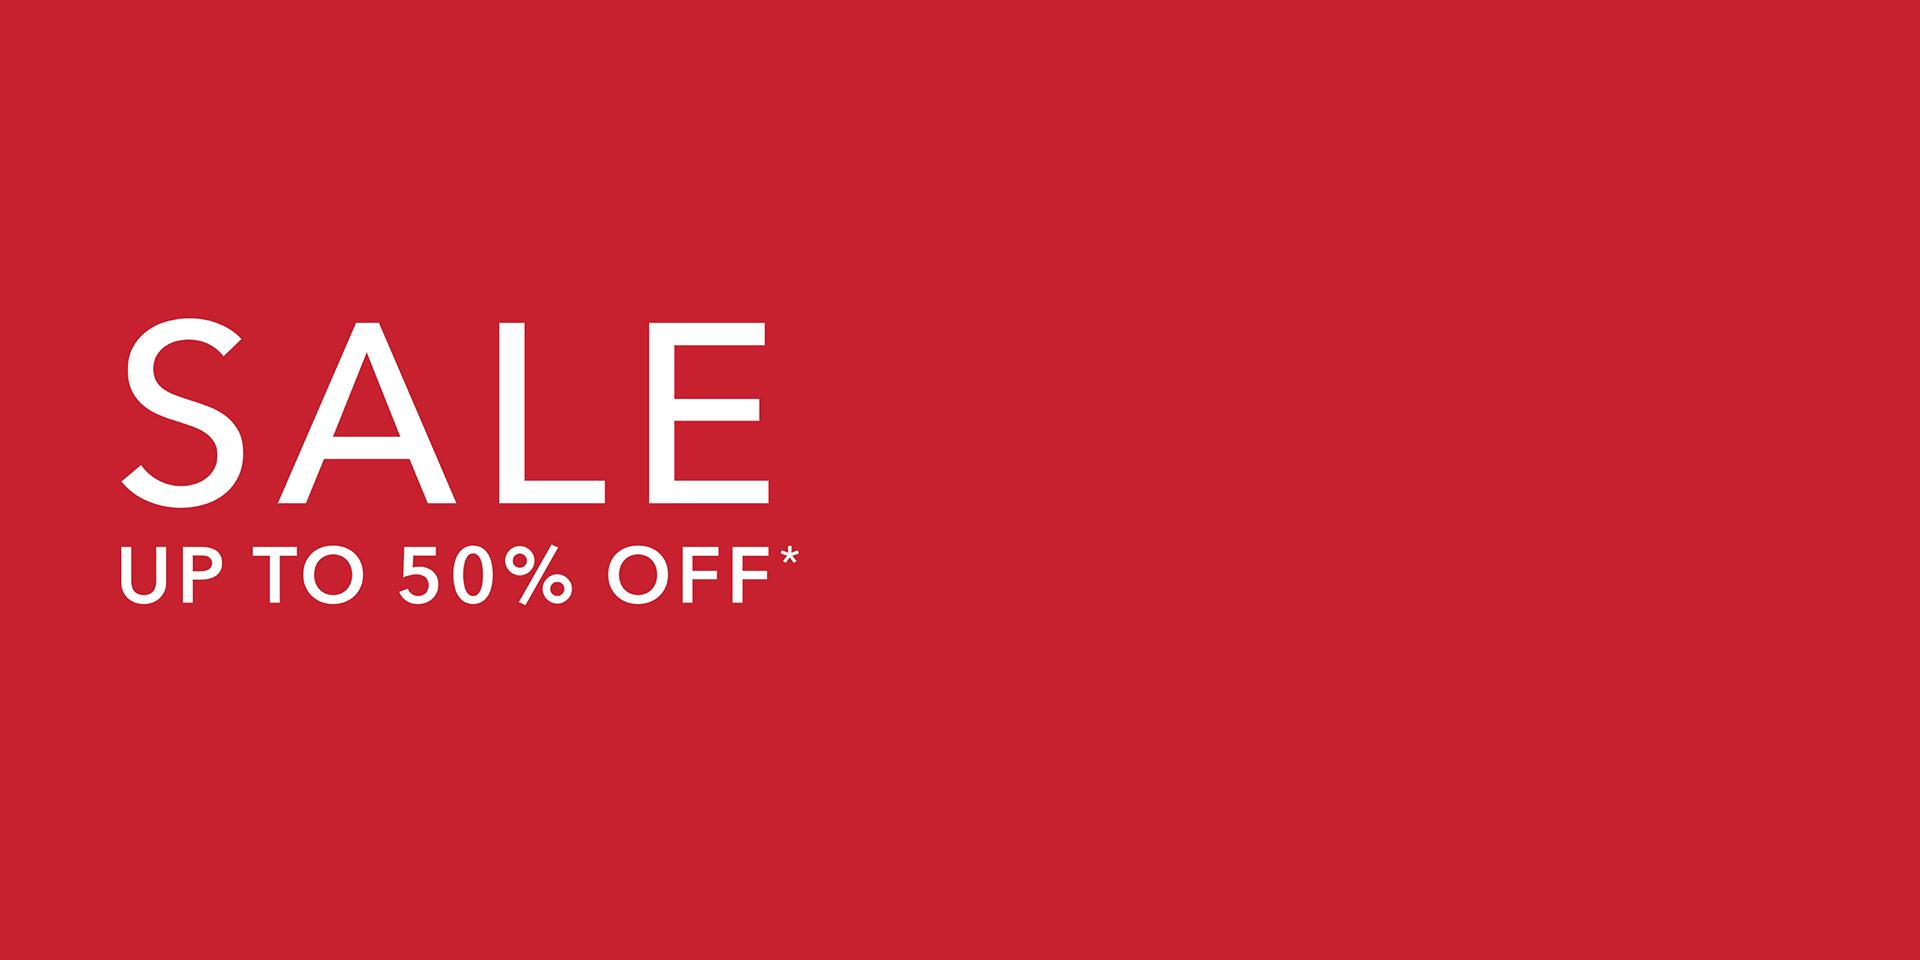 sale up to 50% off graphic